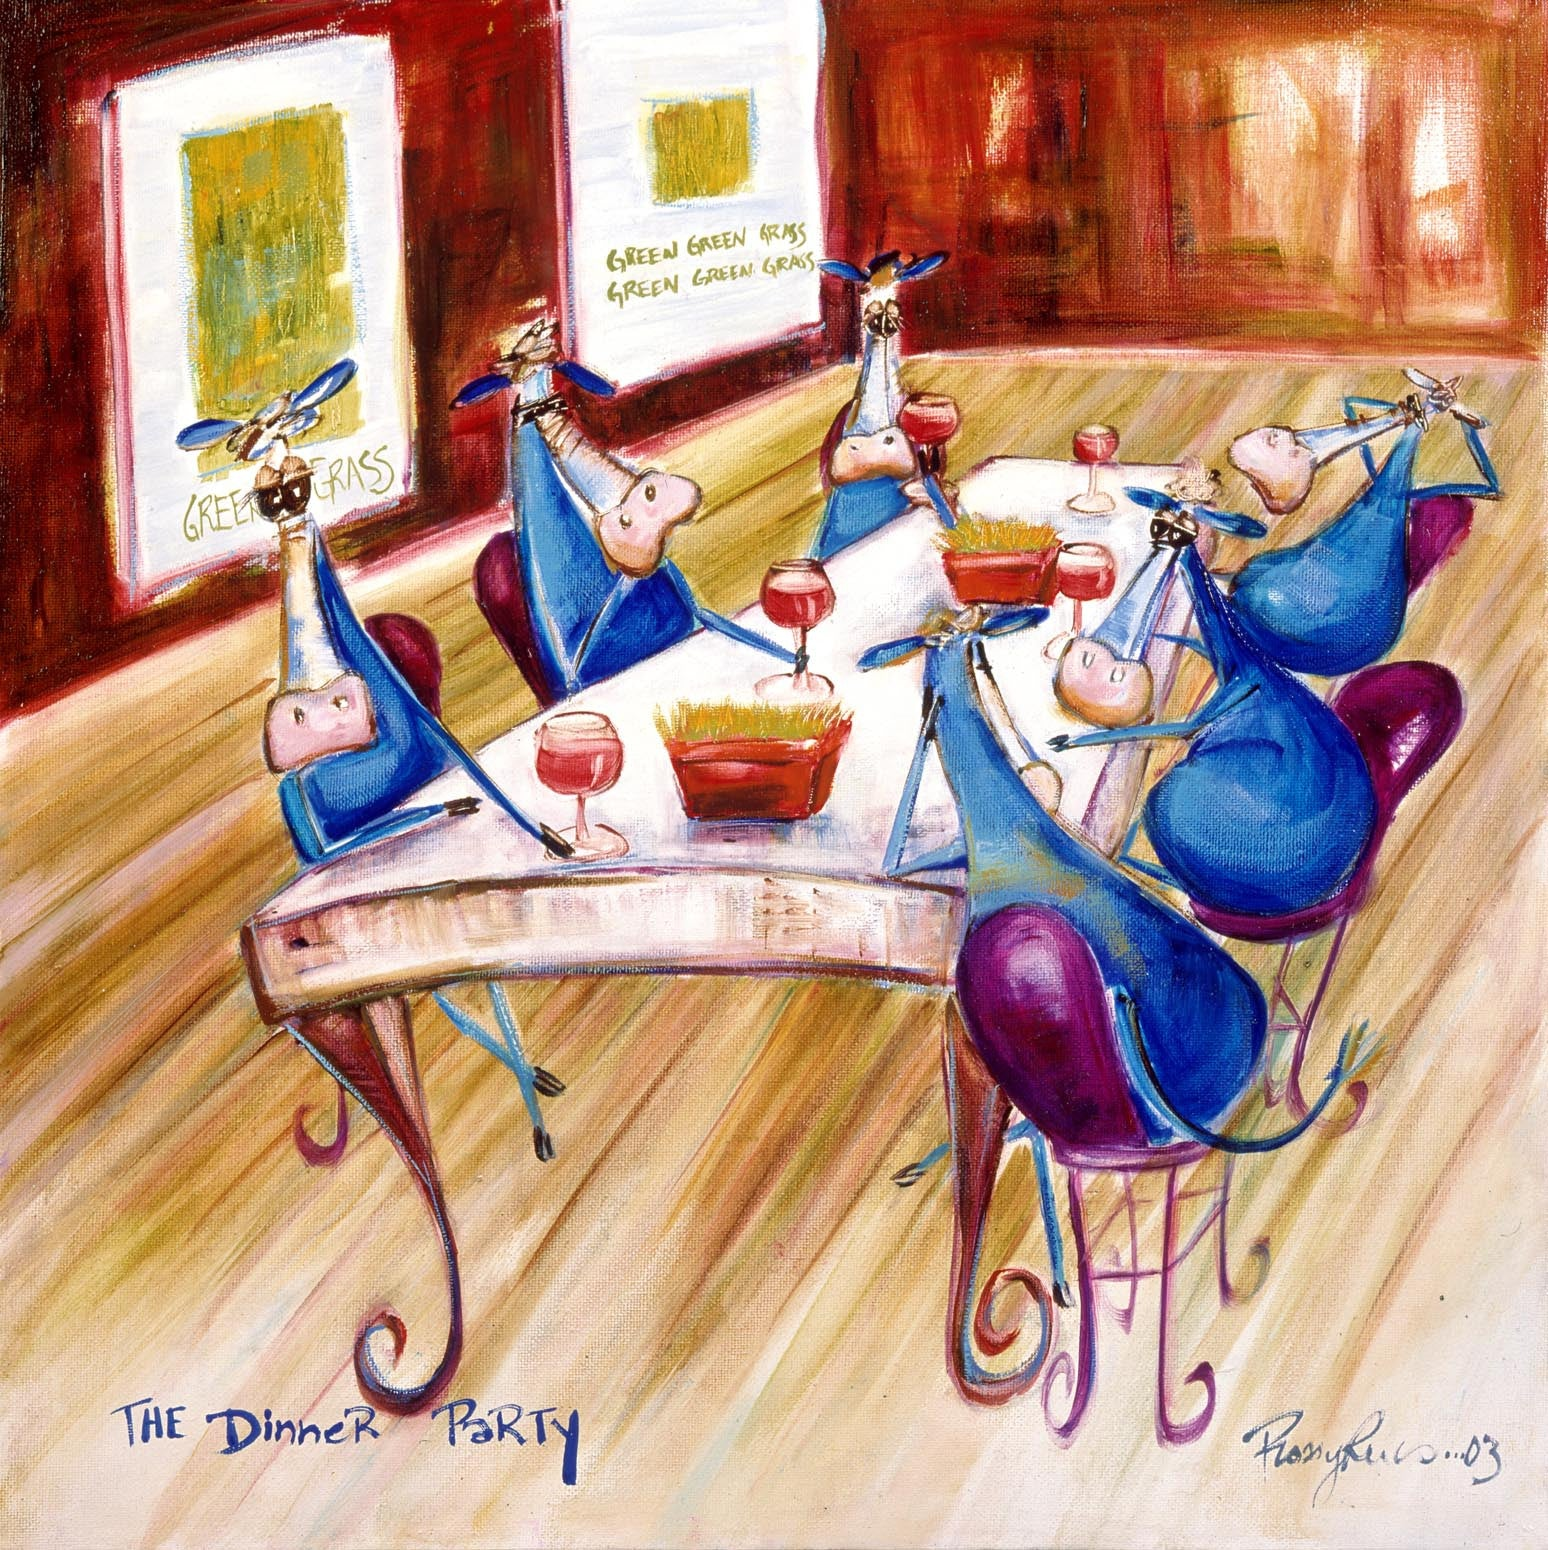 THE DINNER PARTY - YEAR 2003